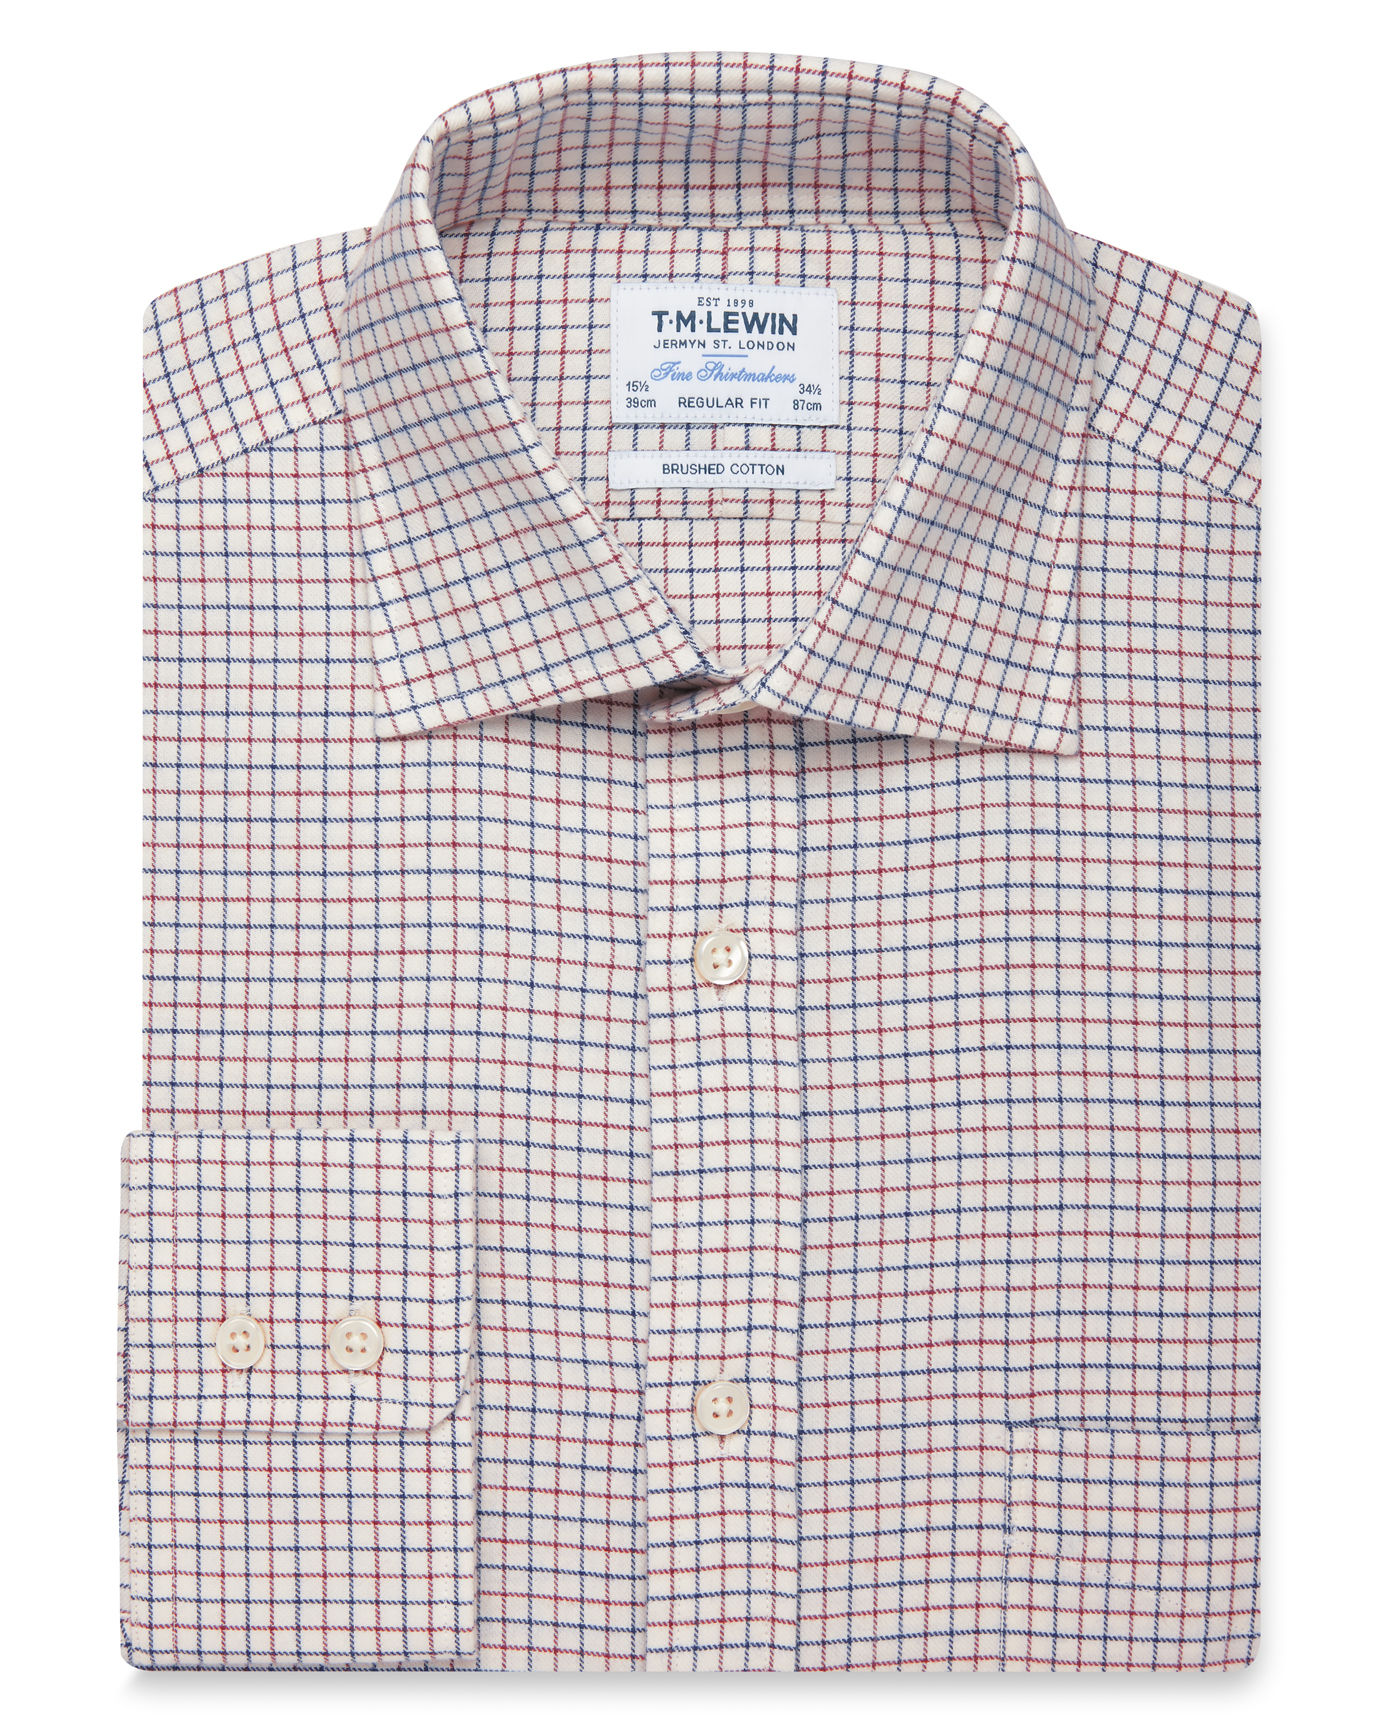 T.M.Lewin Brushed Cotton Cream Red Large Check Regular Fit Button Cuff Shirt